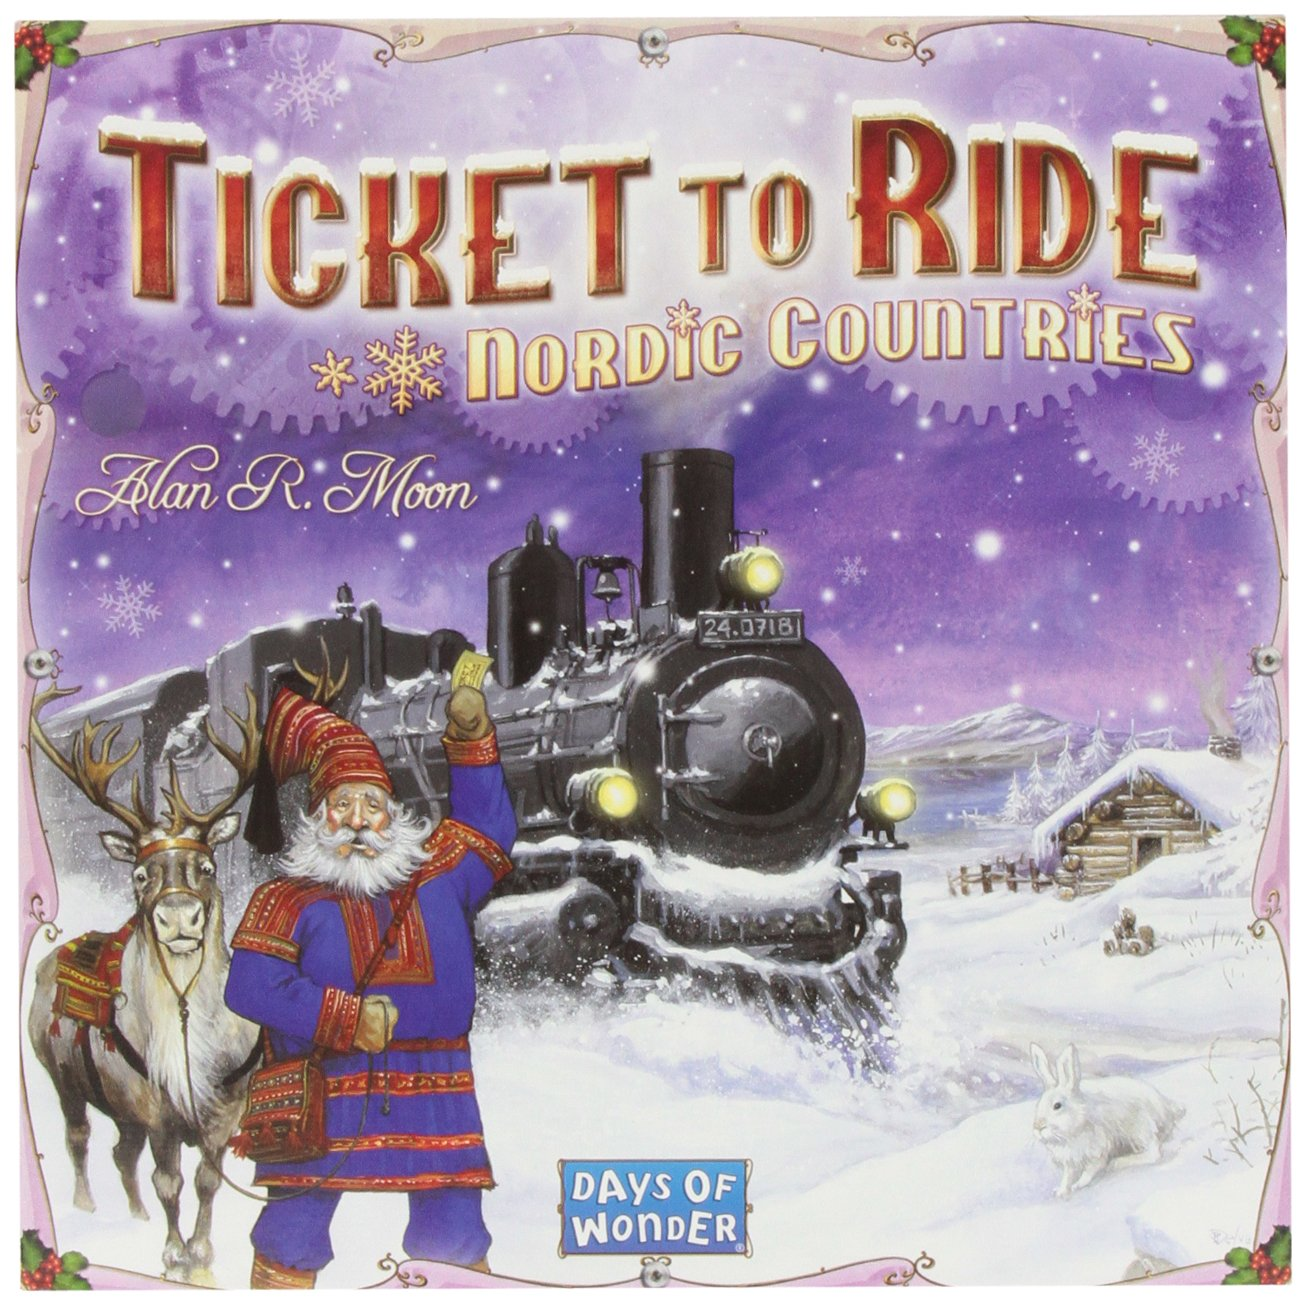 Christmas Gift Guide - Ticket to Ride Board Games